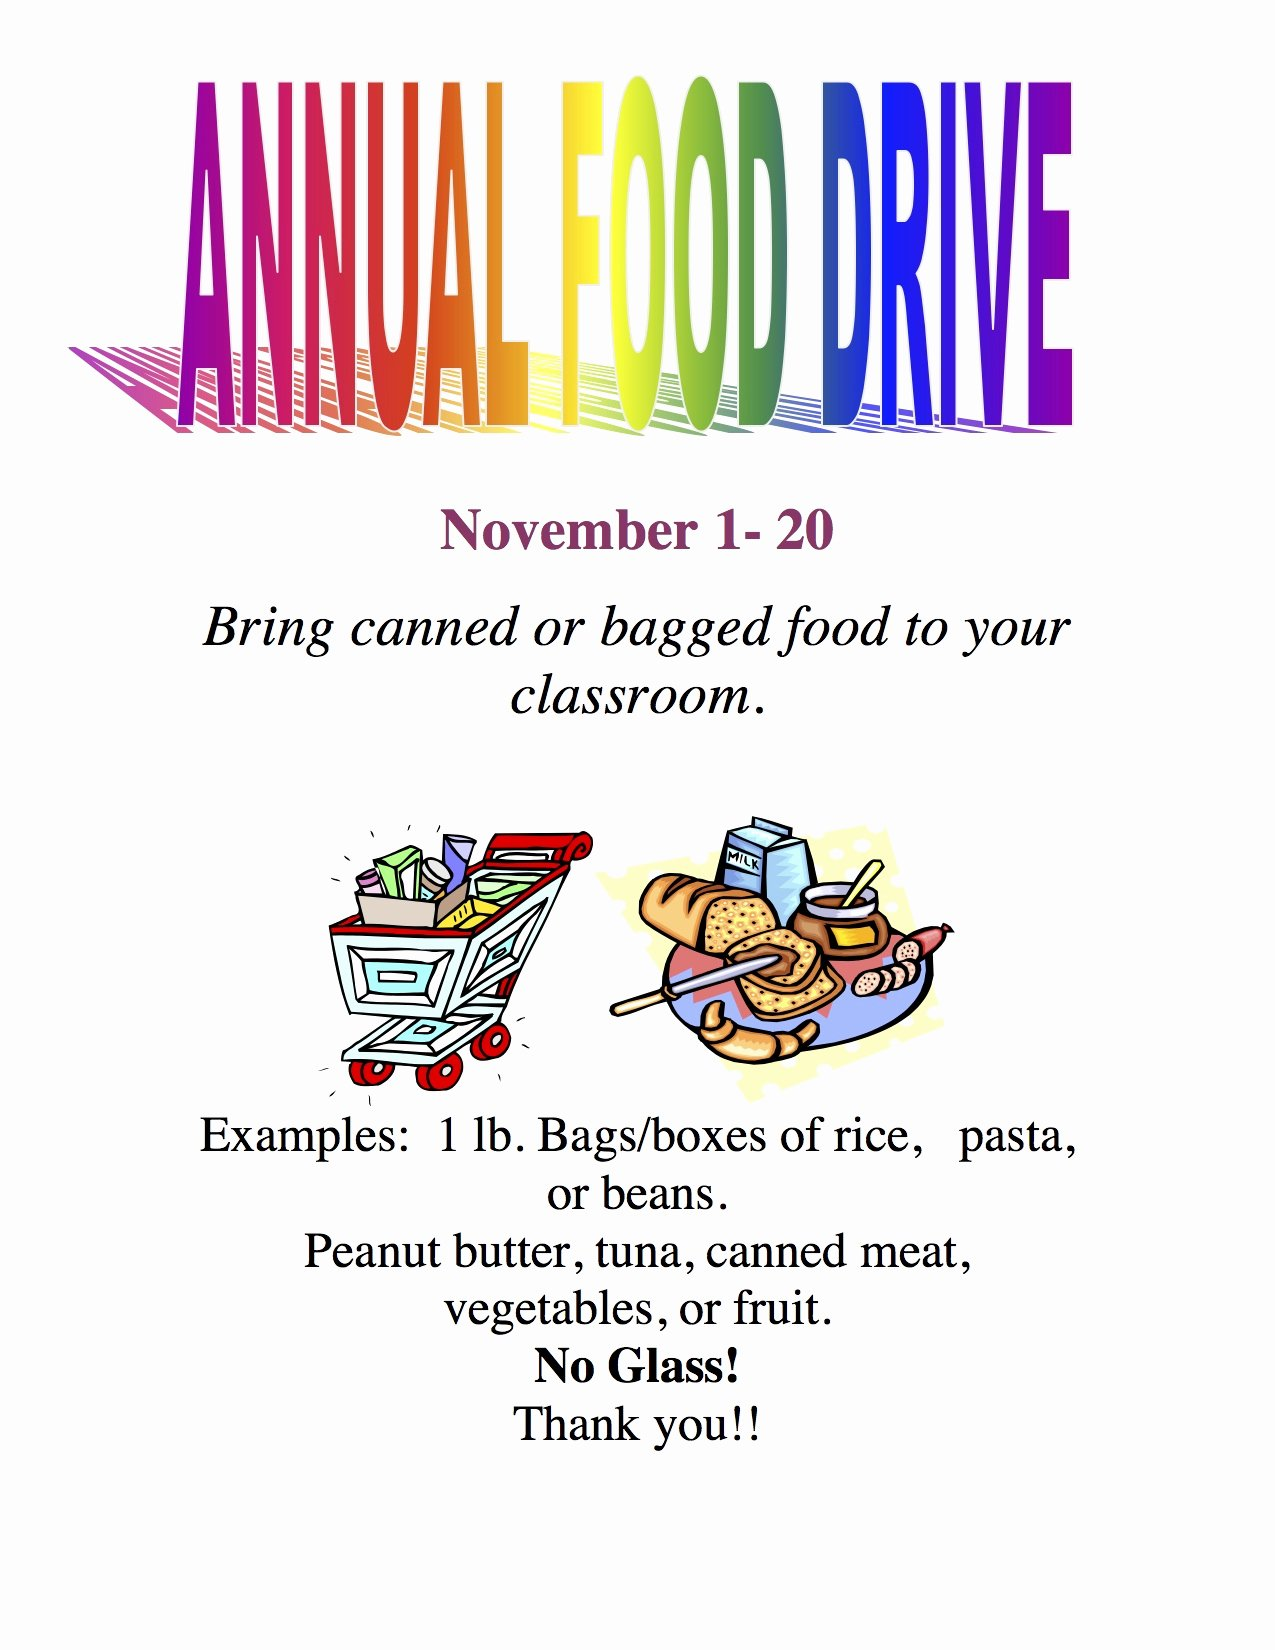 Canned Food Drive Flyer Template Fresh Current events… Camarena Elementary